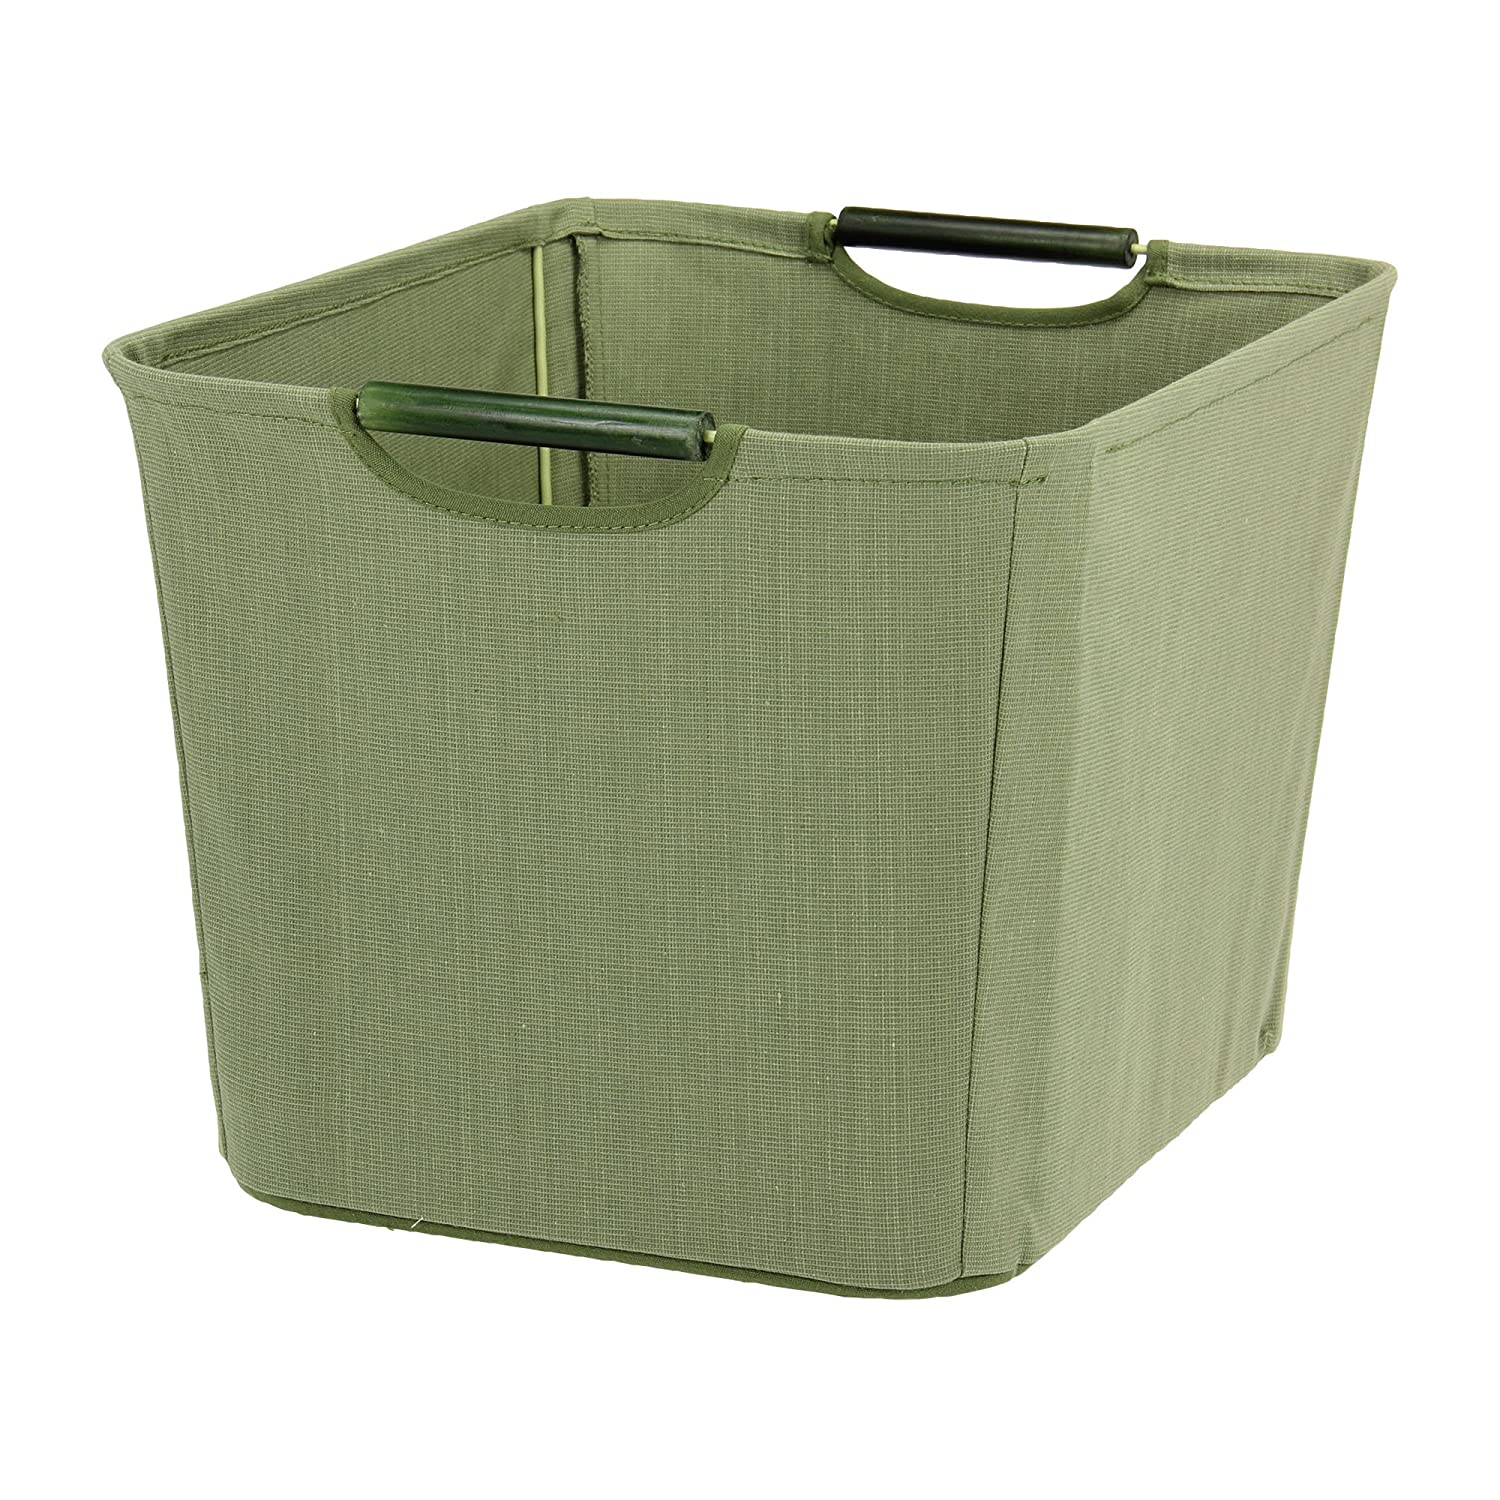 Amazon.com Household Essentials Open Tapered Bin with Wood Handles Medium Green Home u0026 Kitchen  sc 1 st  Amazon.com & Amazon.com: Household Essentials Open Tapered Bin with Wood Handles ...